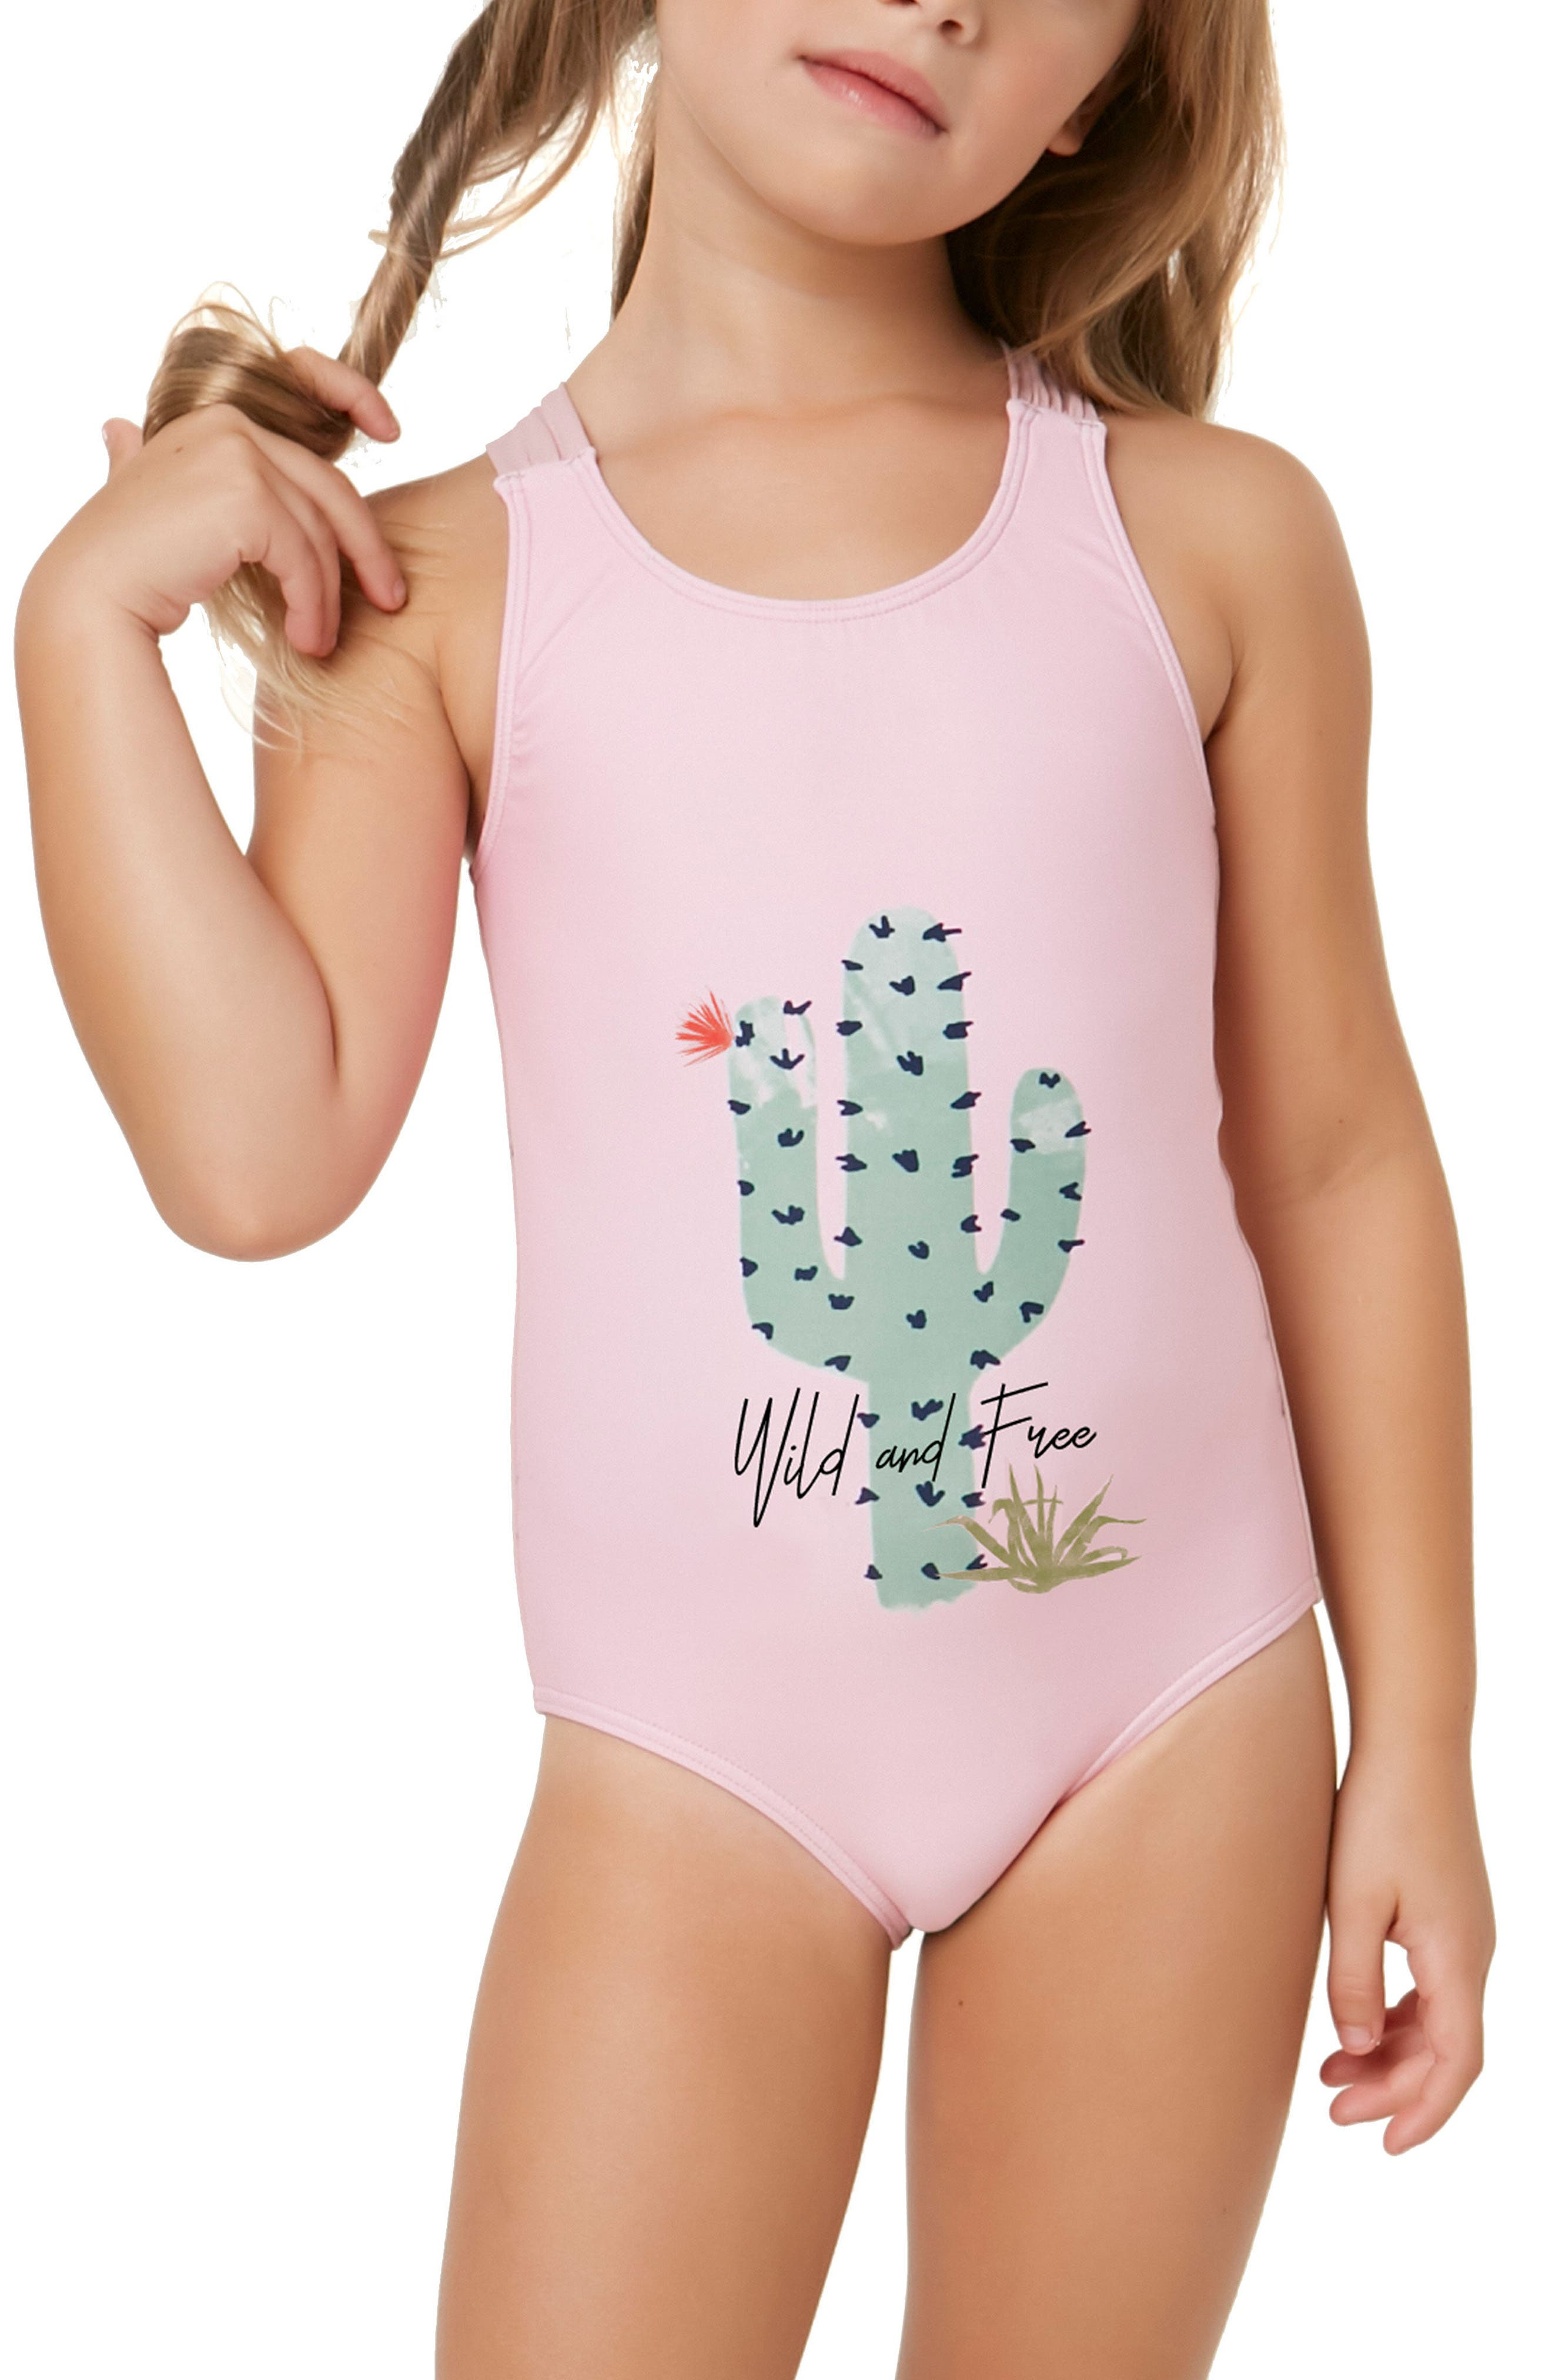 Cacti One-Piece Swimsuit,                         Main,                         color, CACTI